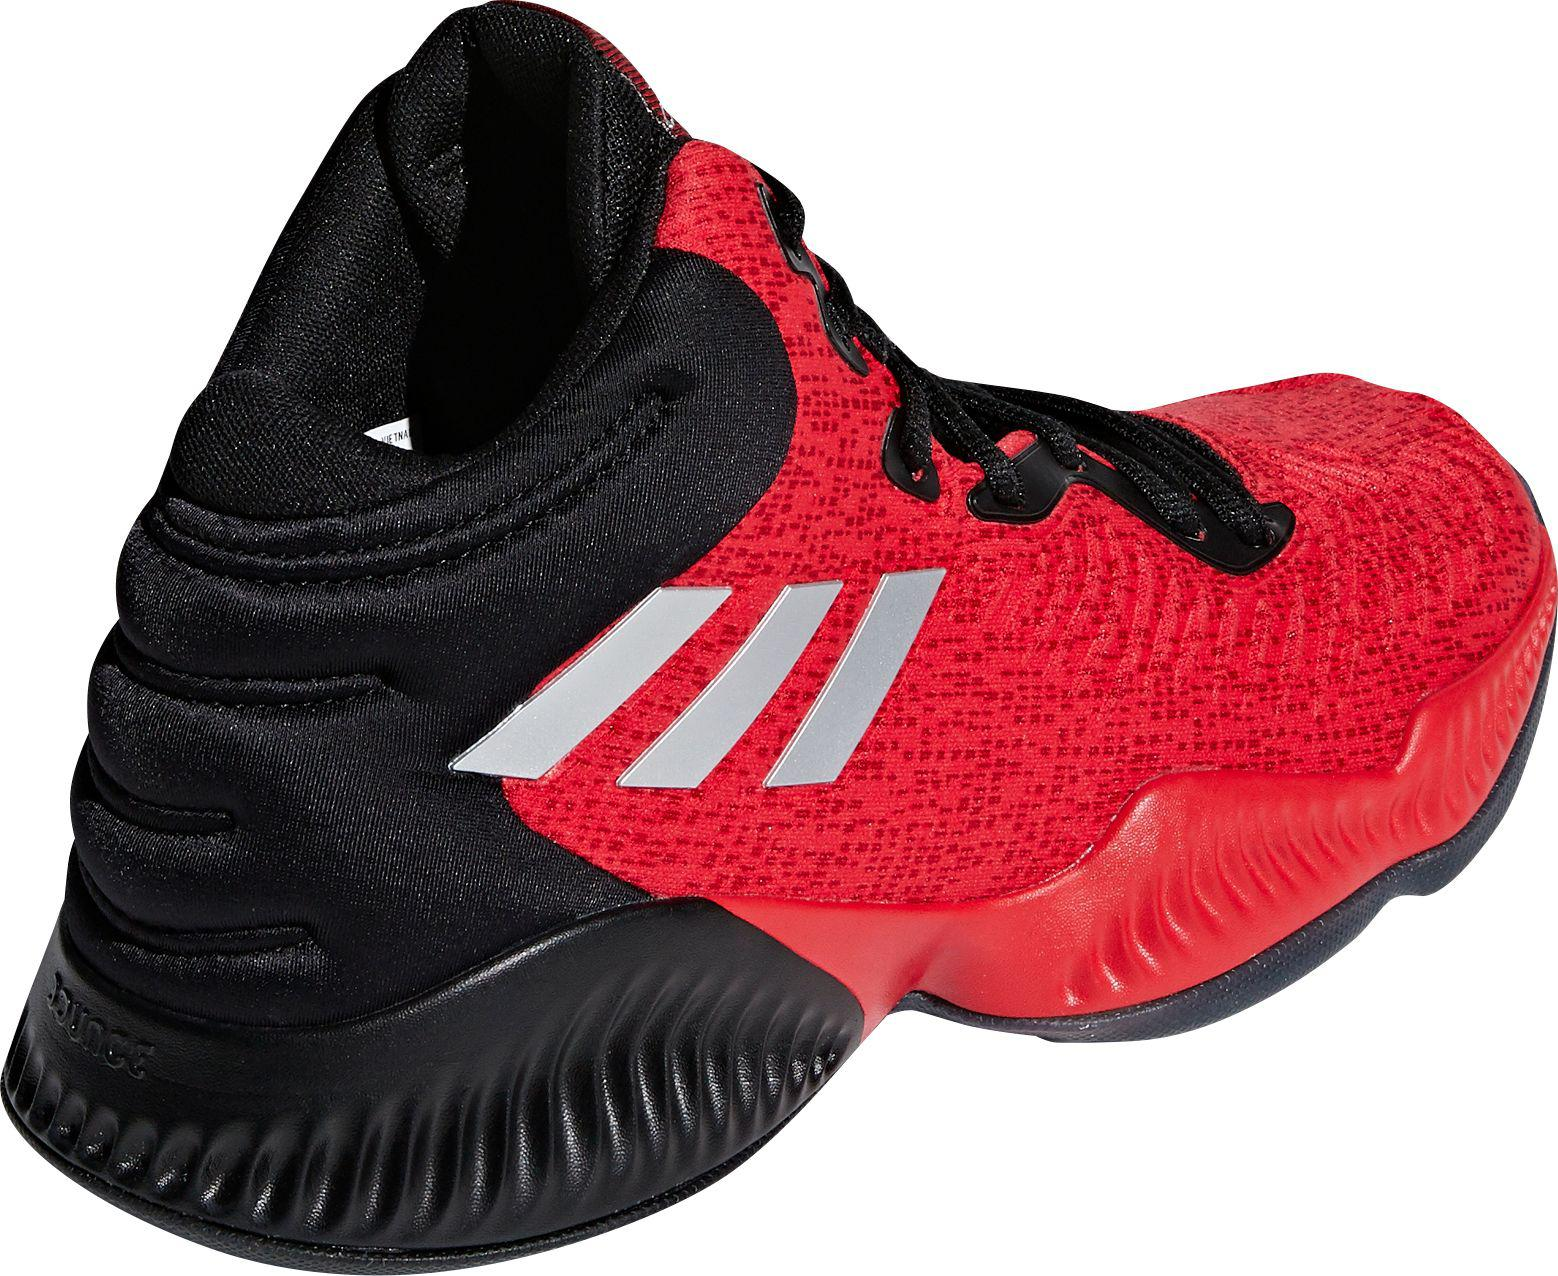 Mad Bounce 2018 Basketball Shoes in Red